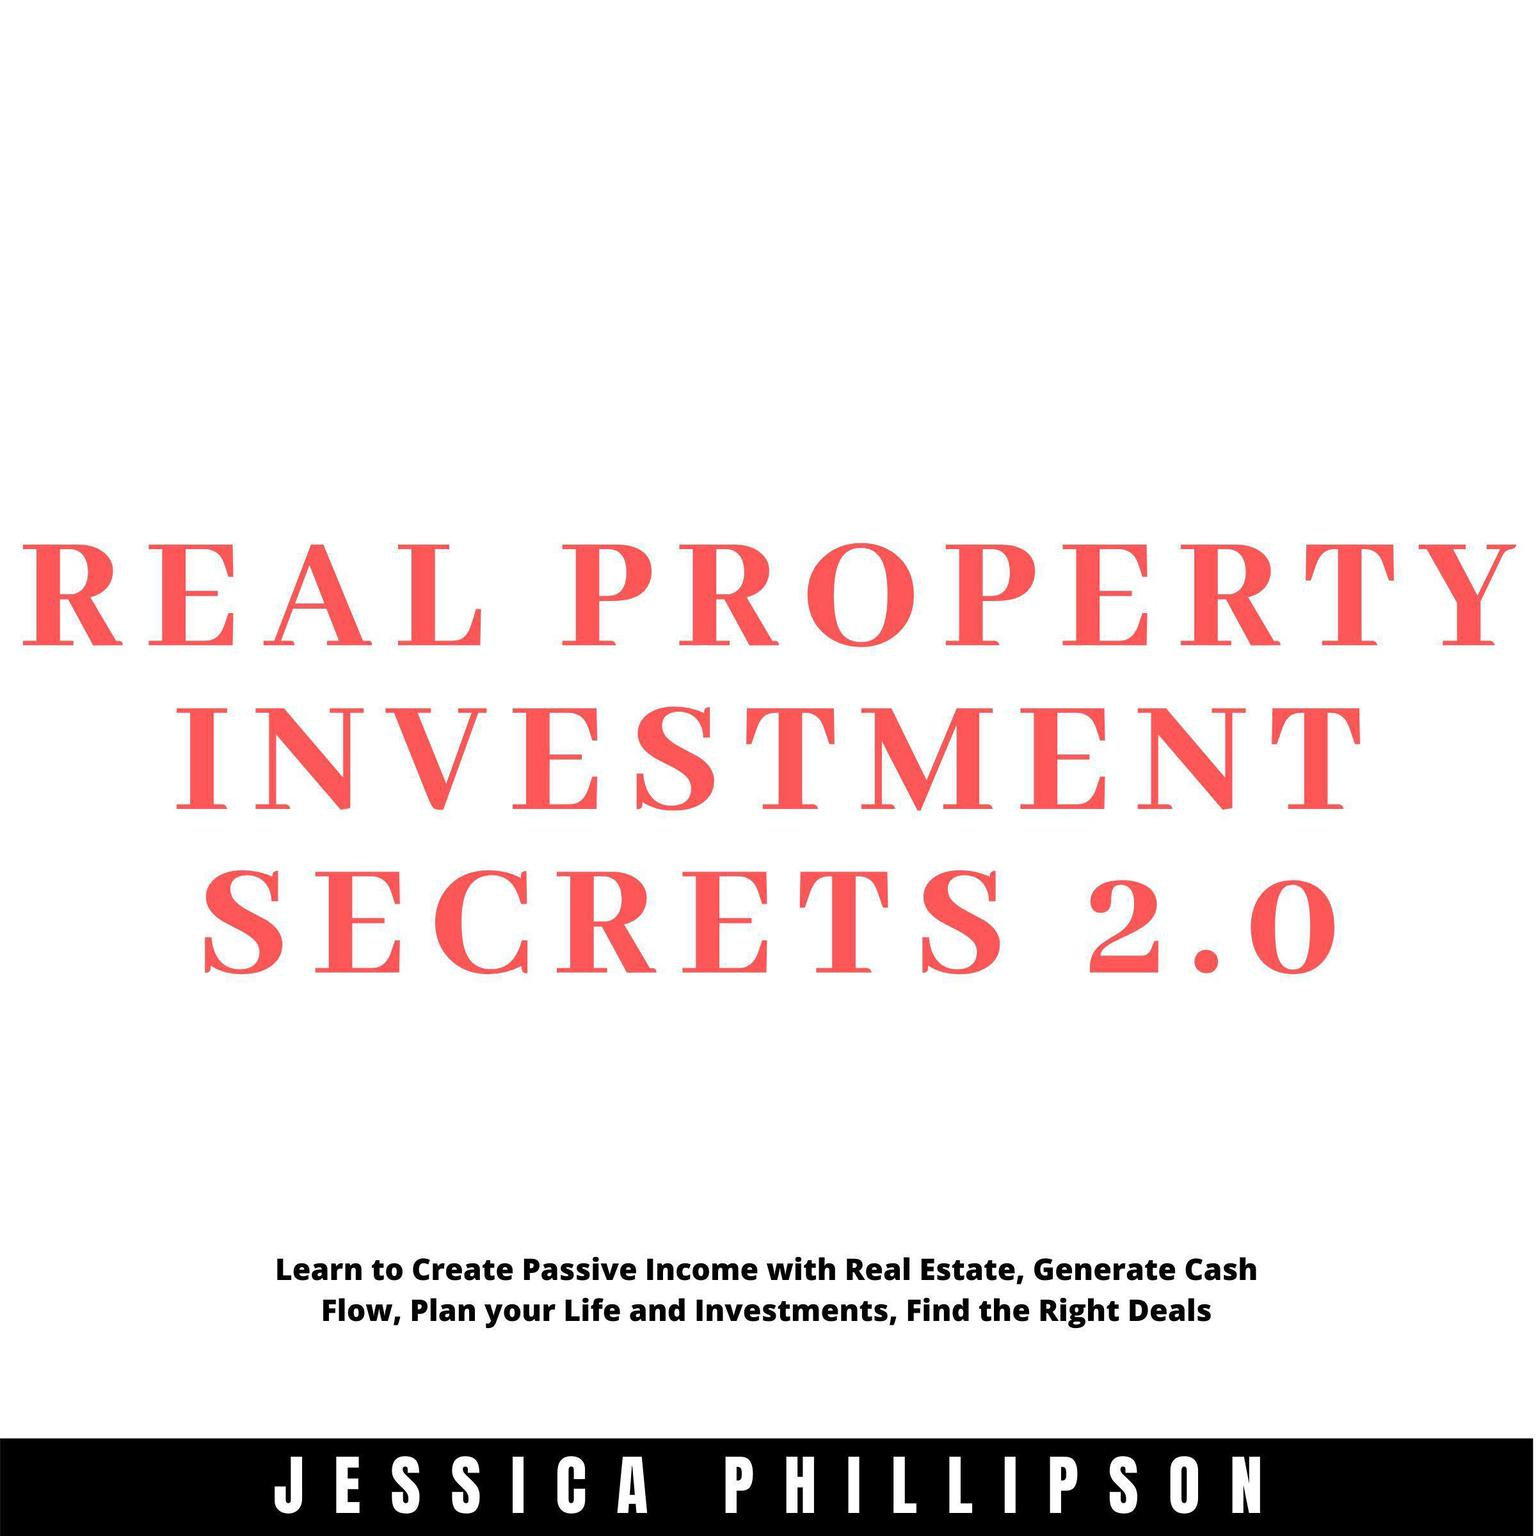 Real Property Investment Secrets 2.0.: Learn to Create Passive Income with Real Estate, Generate Cash Flow, Plan your Life and Investment, Find the Right Deals Audiobook, by Jessica Phillipson